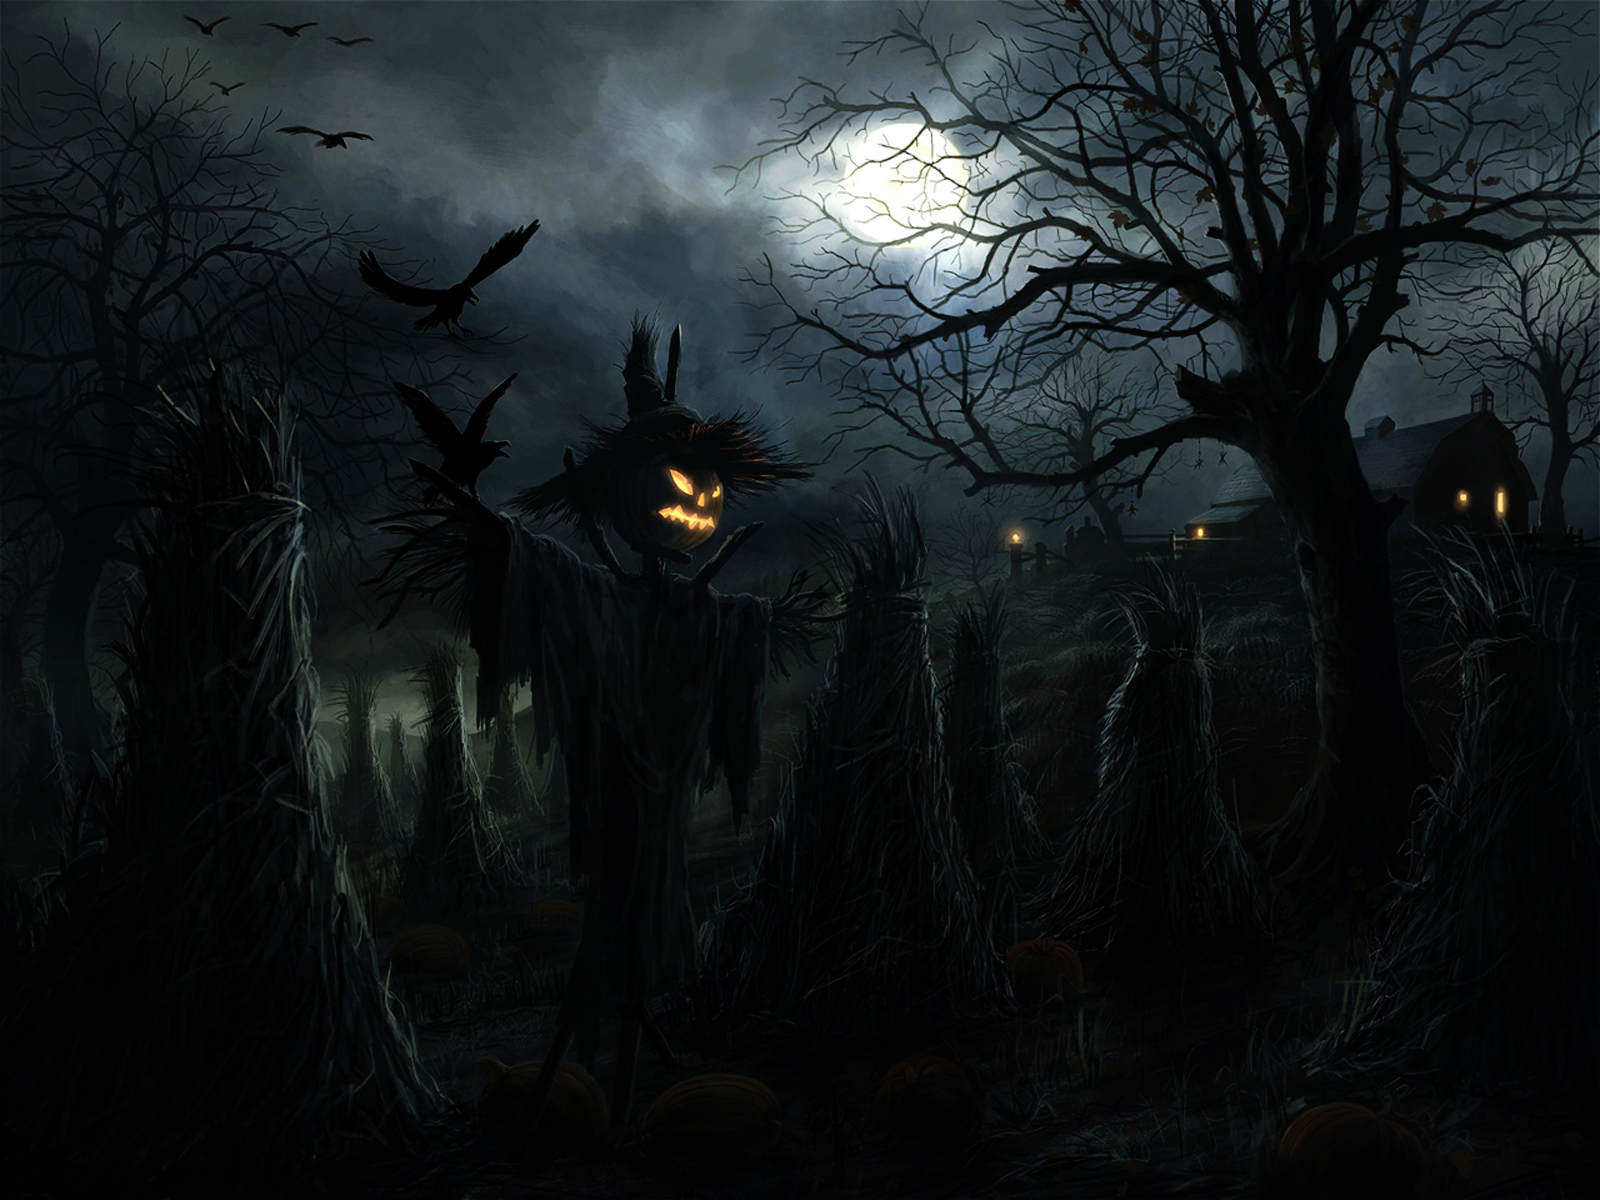 Amazing   Wallpaper Horse Creepy - Halloween_Creepy_Craw_HD_Wallpaper_Vvallpaper  Snapshot_585.jpg